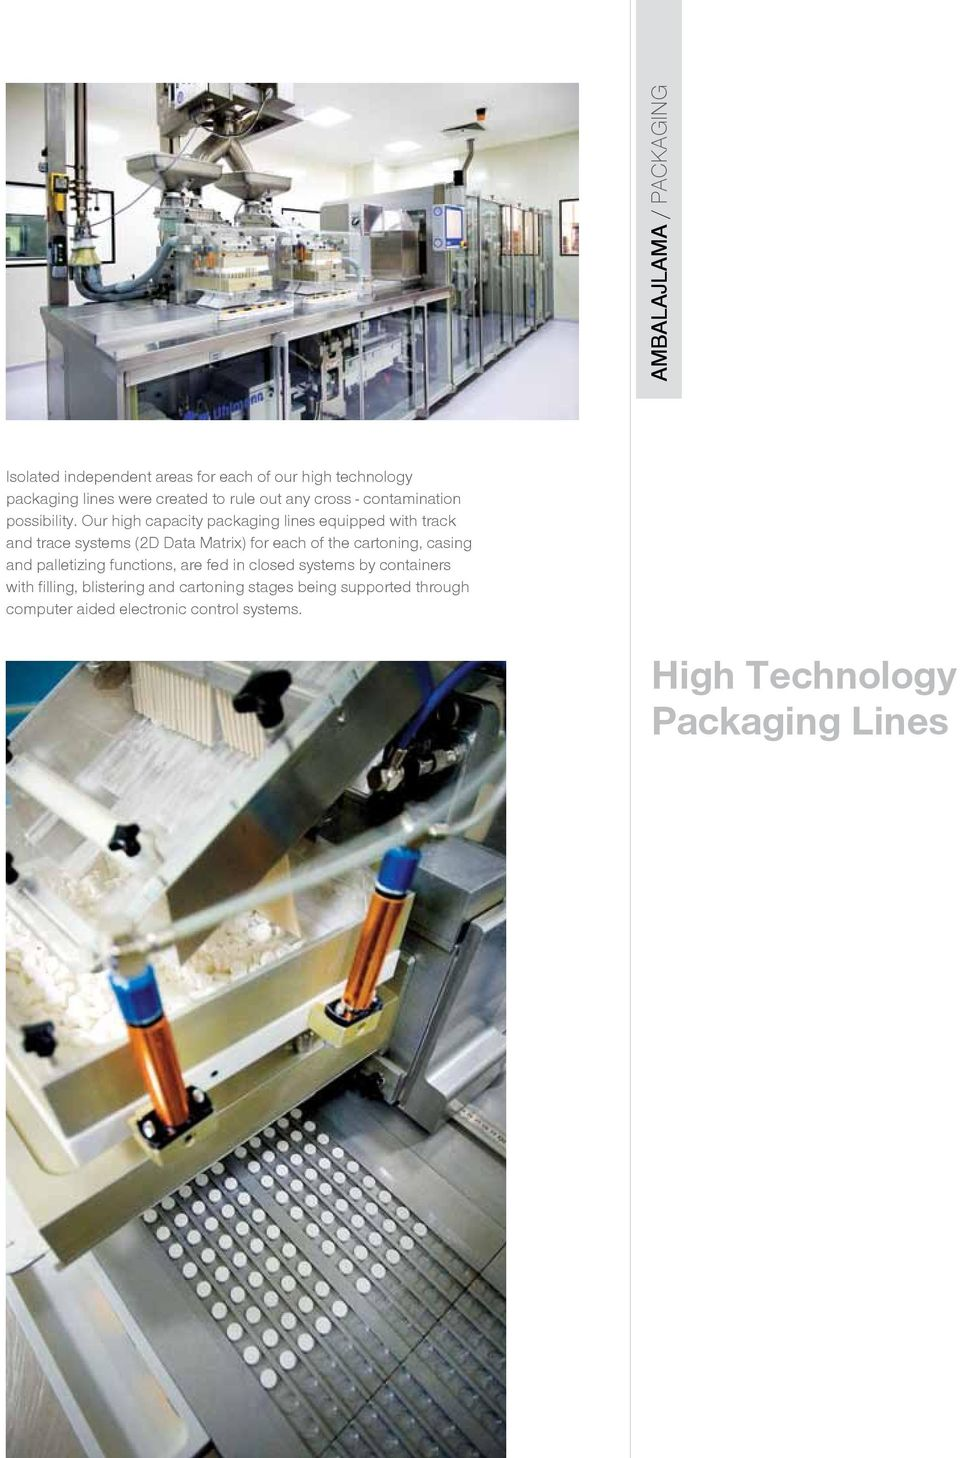 Our high capacity packaging lines equipped with track and trace systems (2D Data Matrix) for each of the cartoning, casing